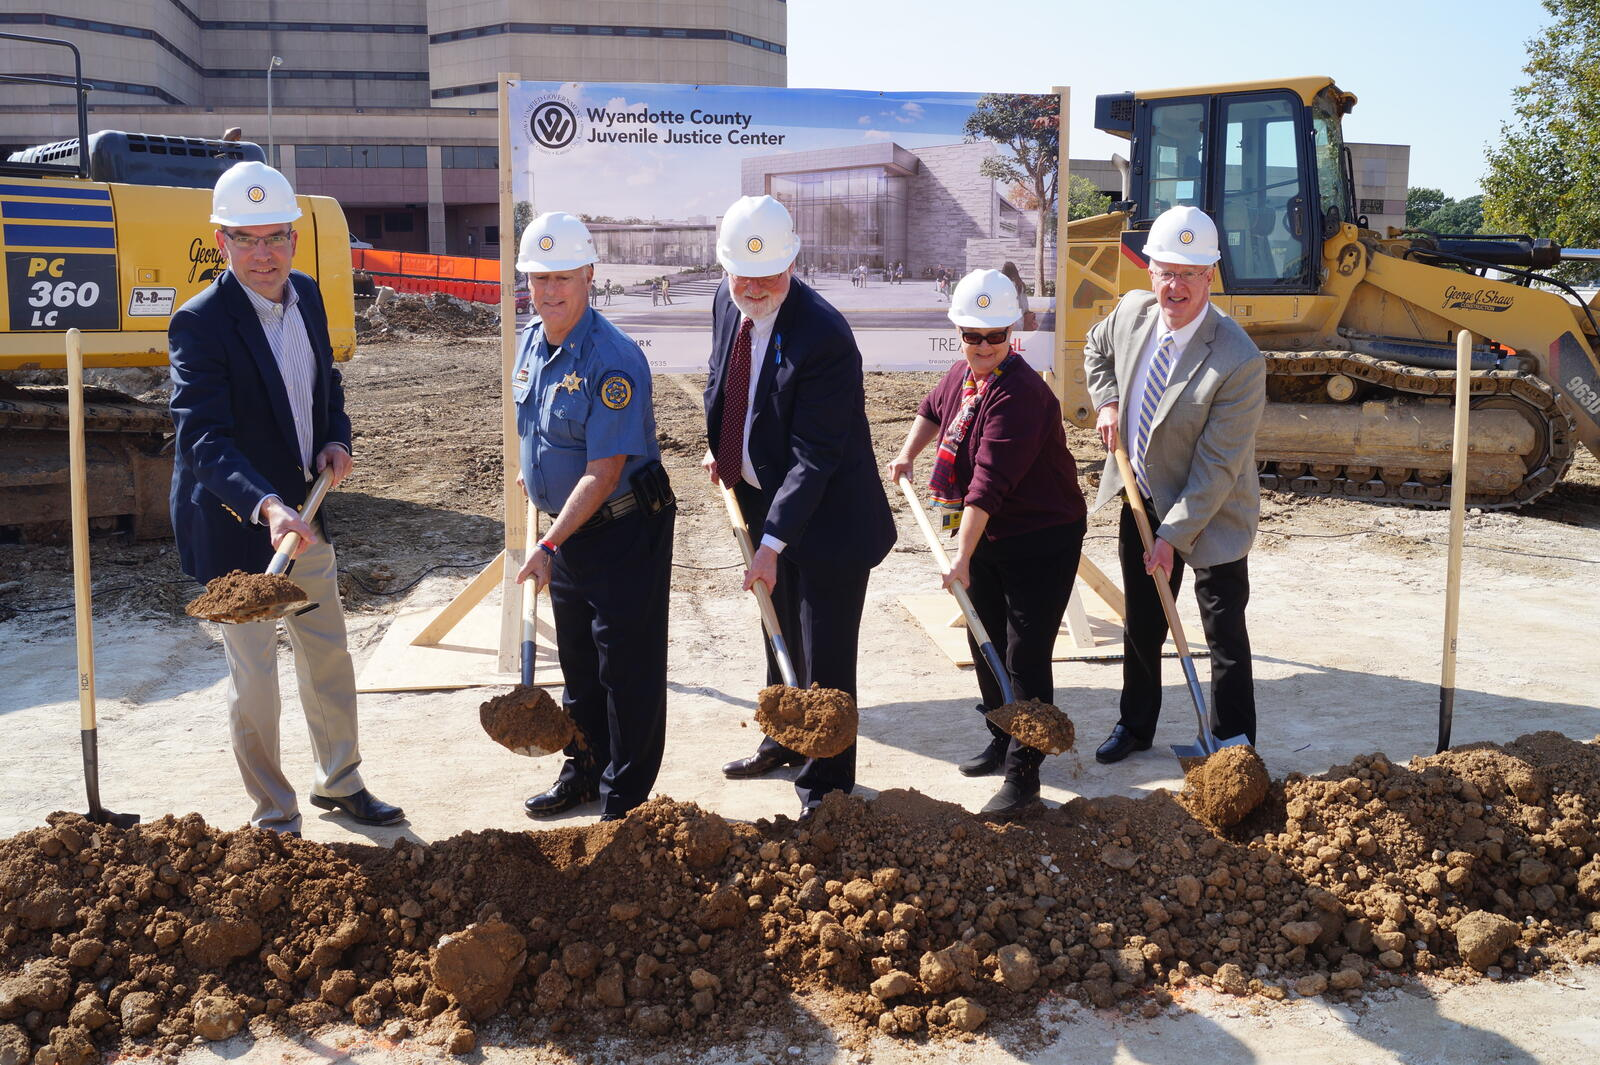 Groundbreaking Held for New Juvenile Justice Center